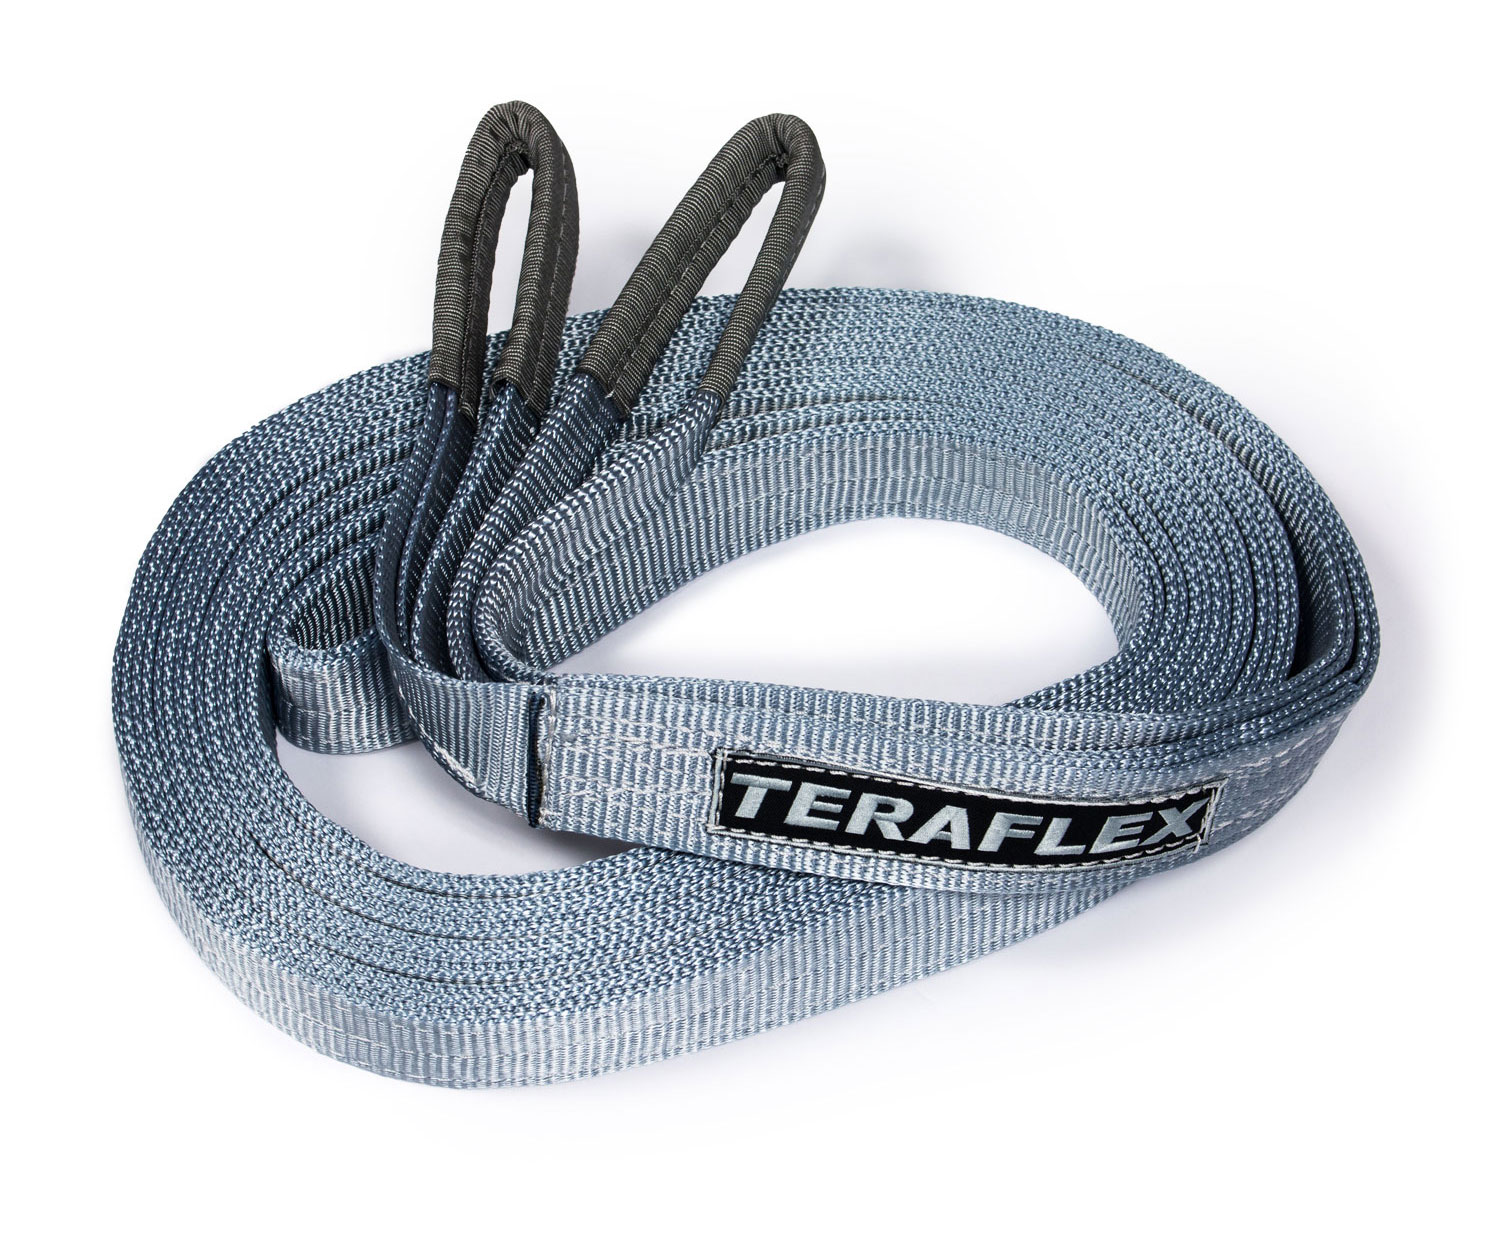 TeraFlex Recovery Tow Strap w/ 20,000-lb. Rating – 30' x 2""